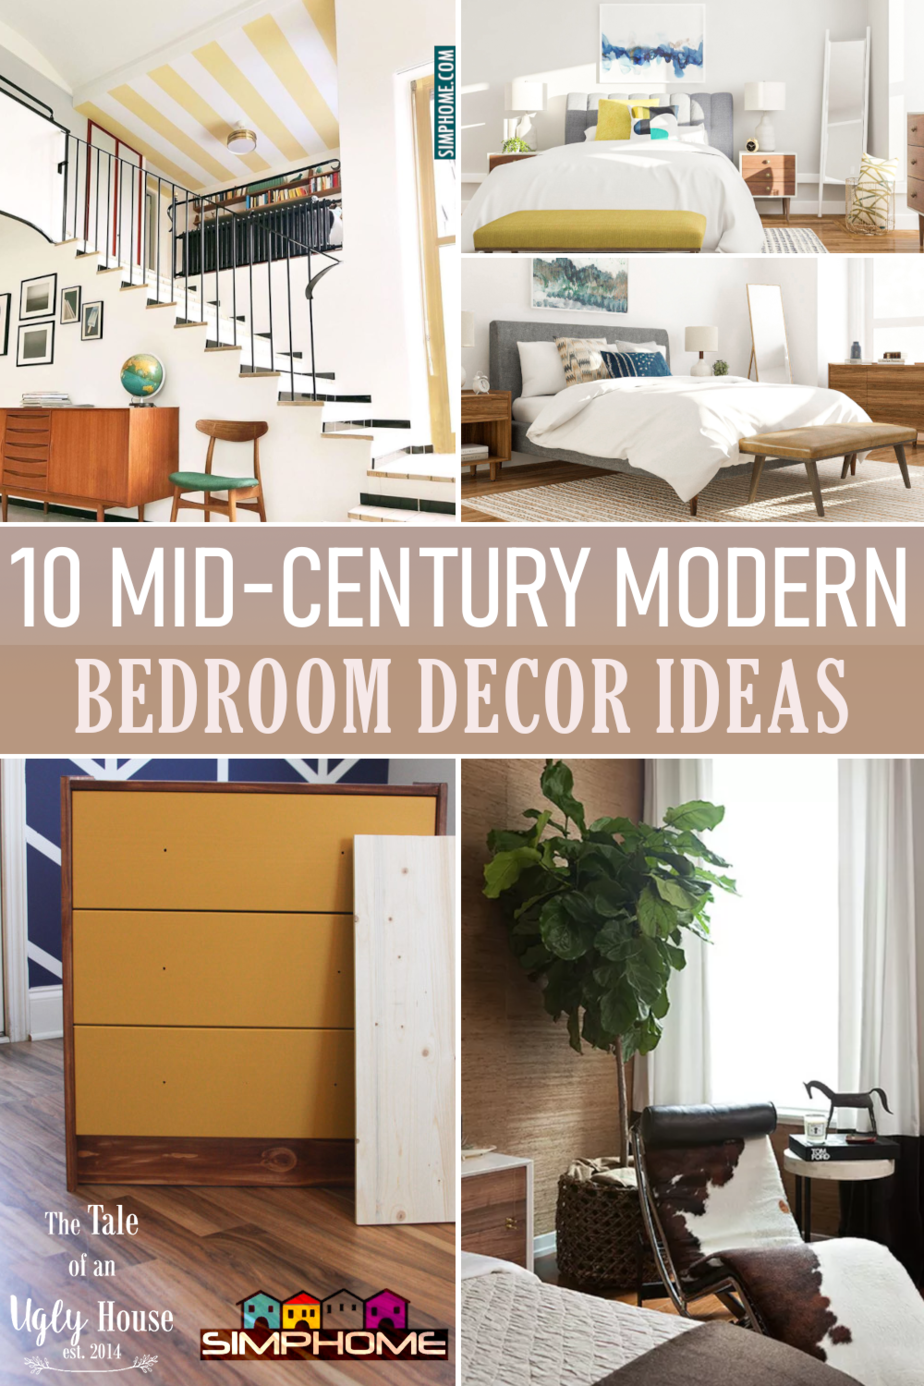 10 Mid century Modern Bedroom Decor Ideas via Simphome.com Featured Image